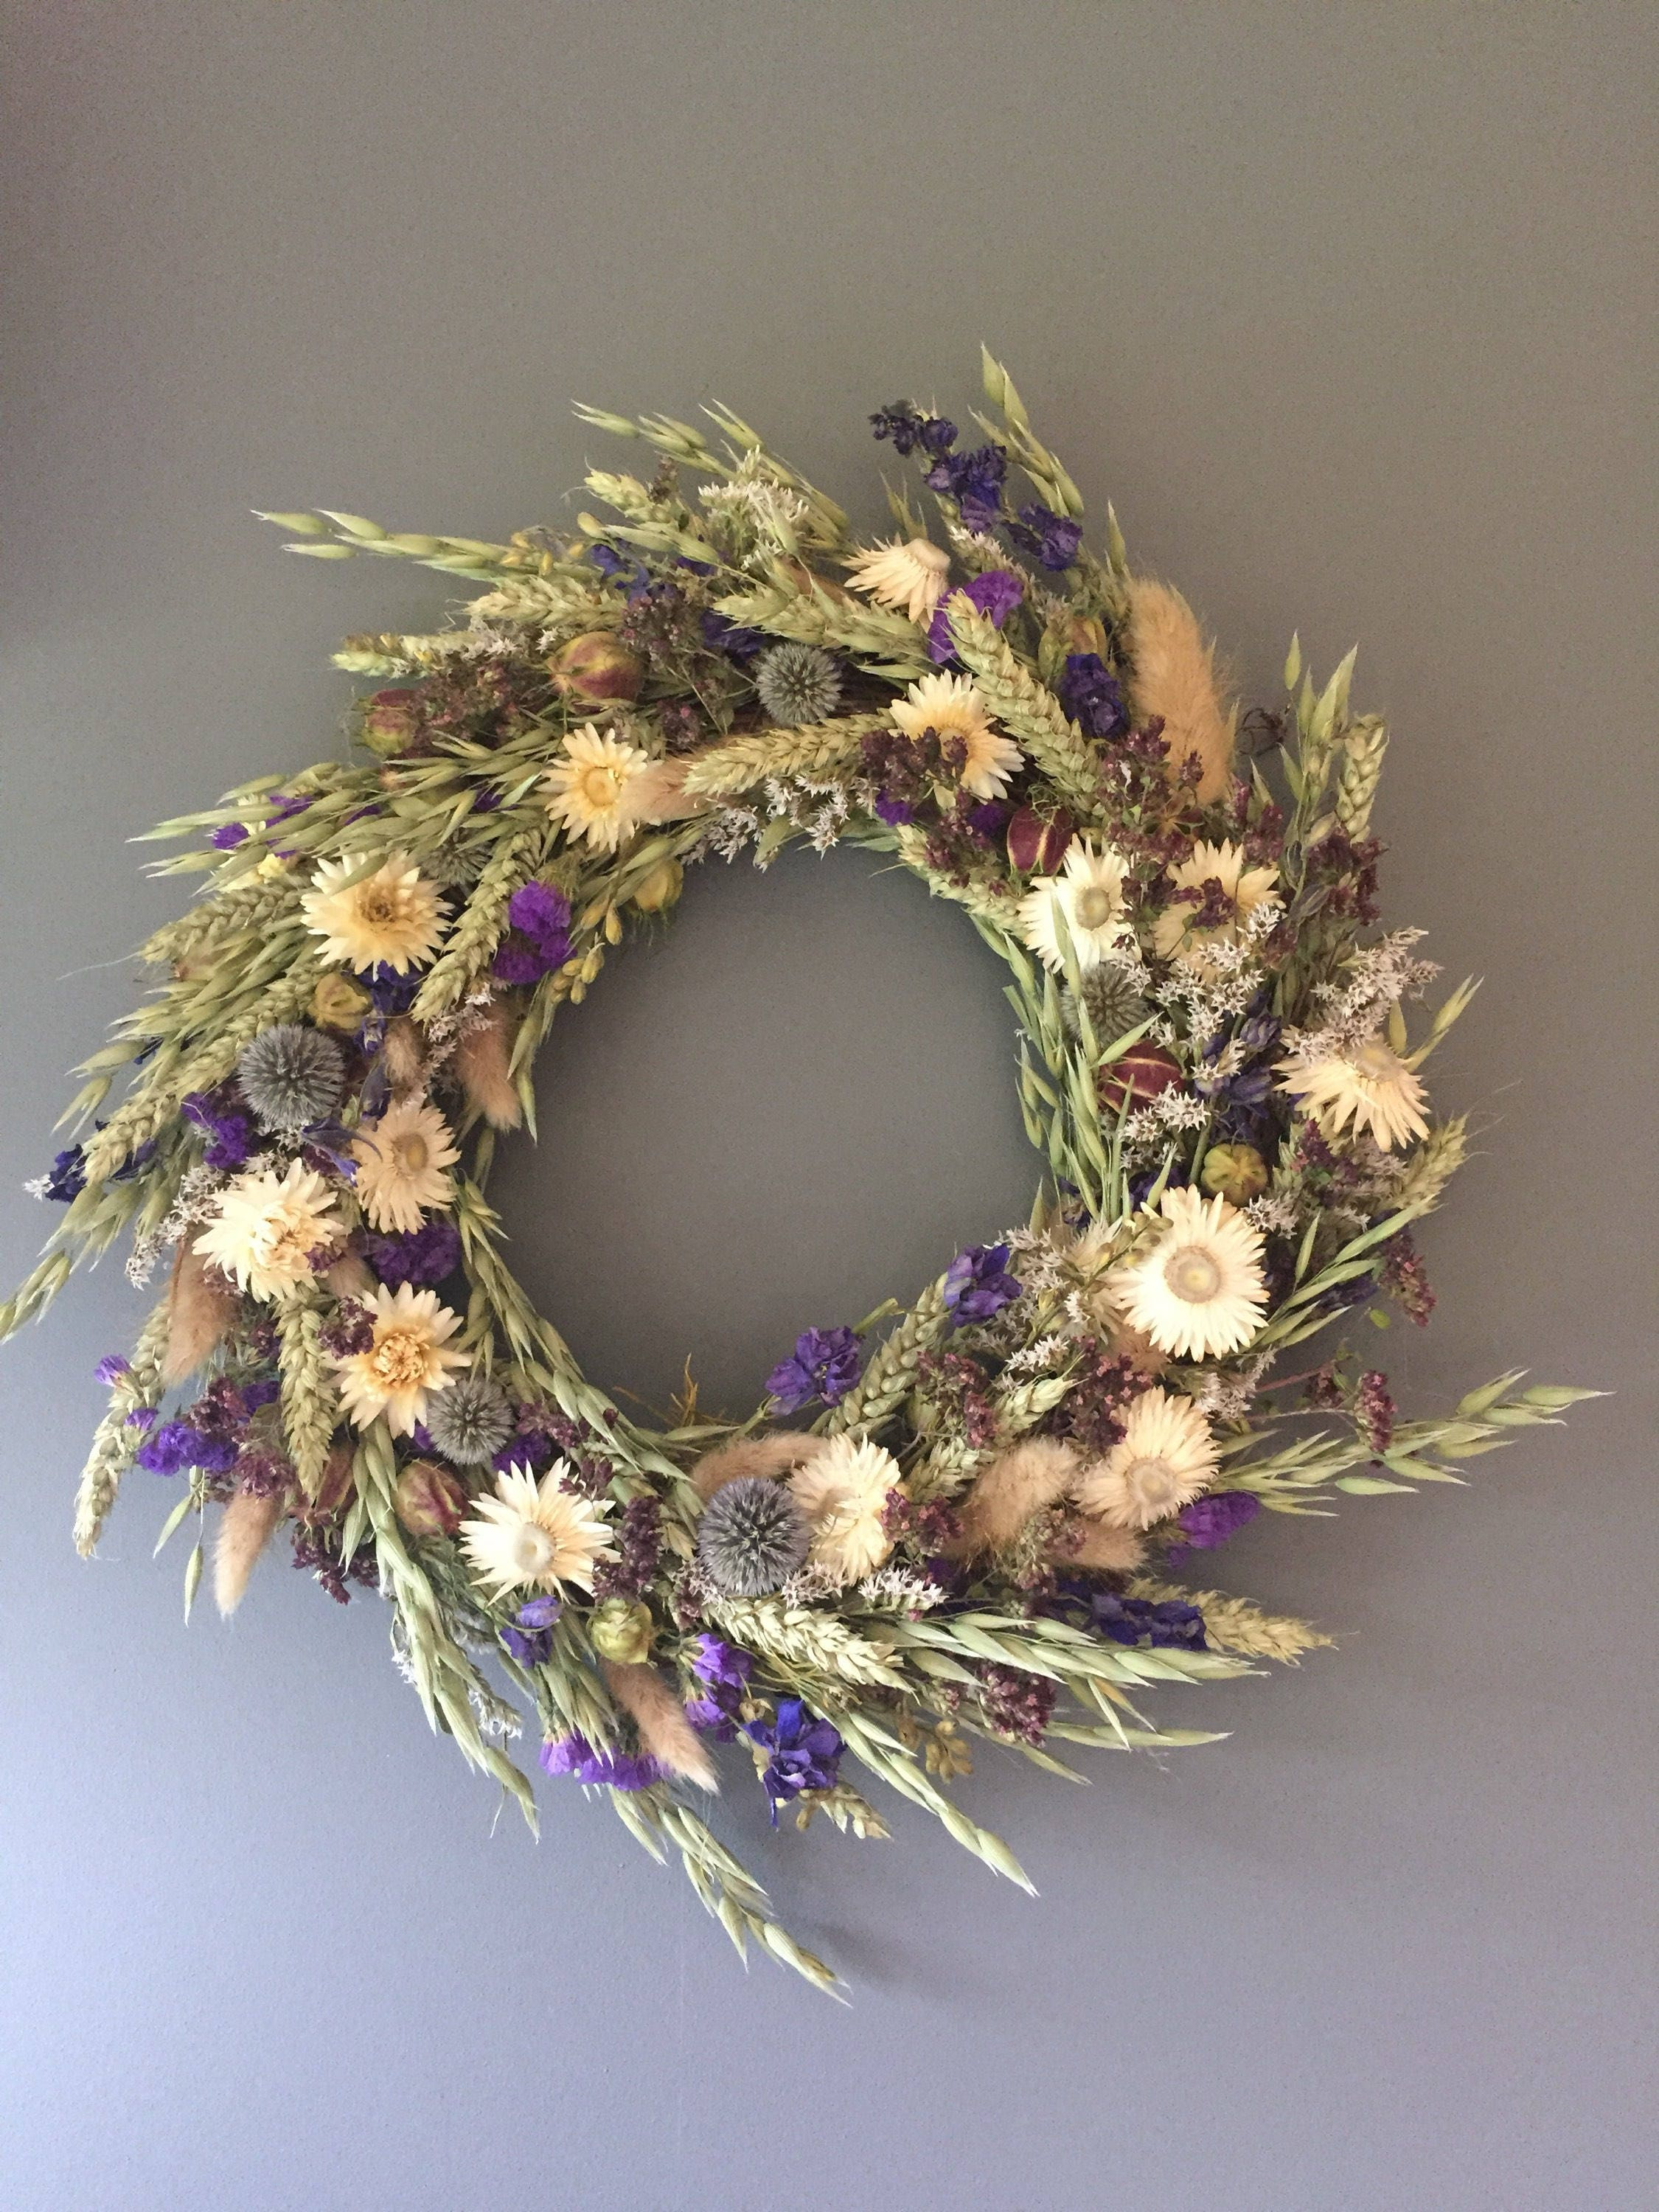 Dried Flower Wreath Blue And White Flower Wall Decor Blue And